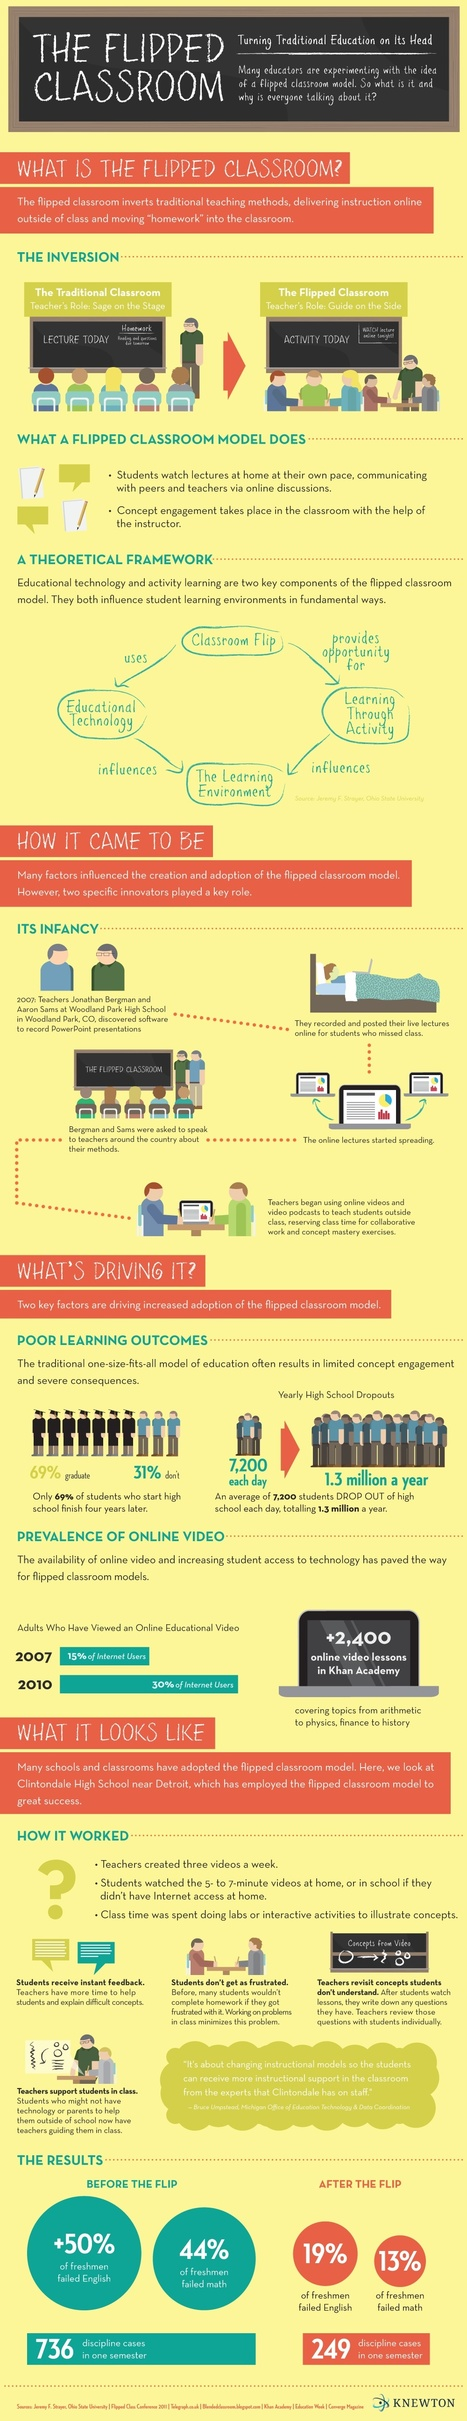 The Flipped Classroom: Turning the Traditional Classroom on its Head | 9ine + education + technology = redefinition + transformation | Scoop.it